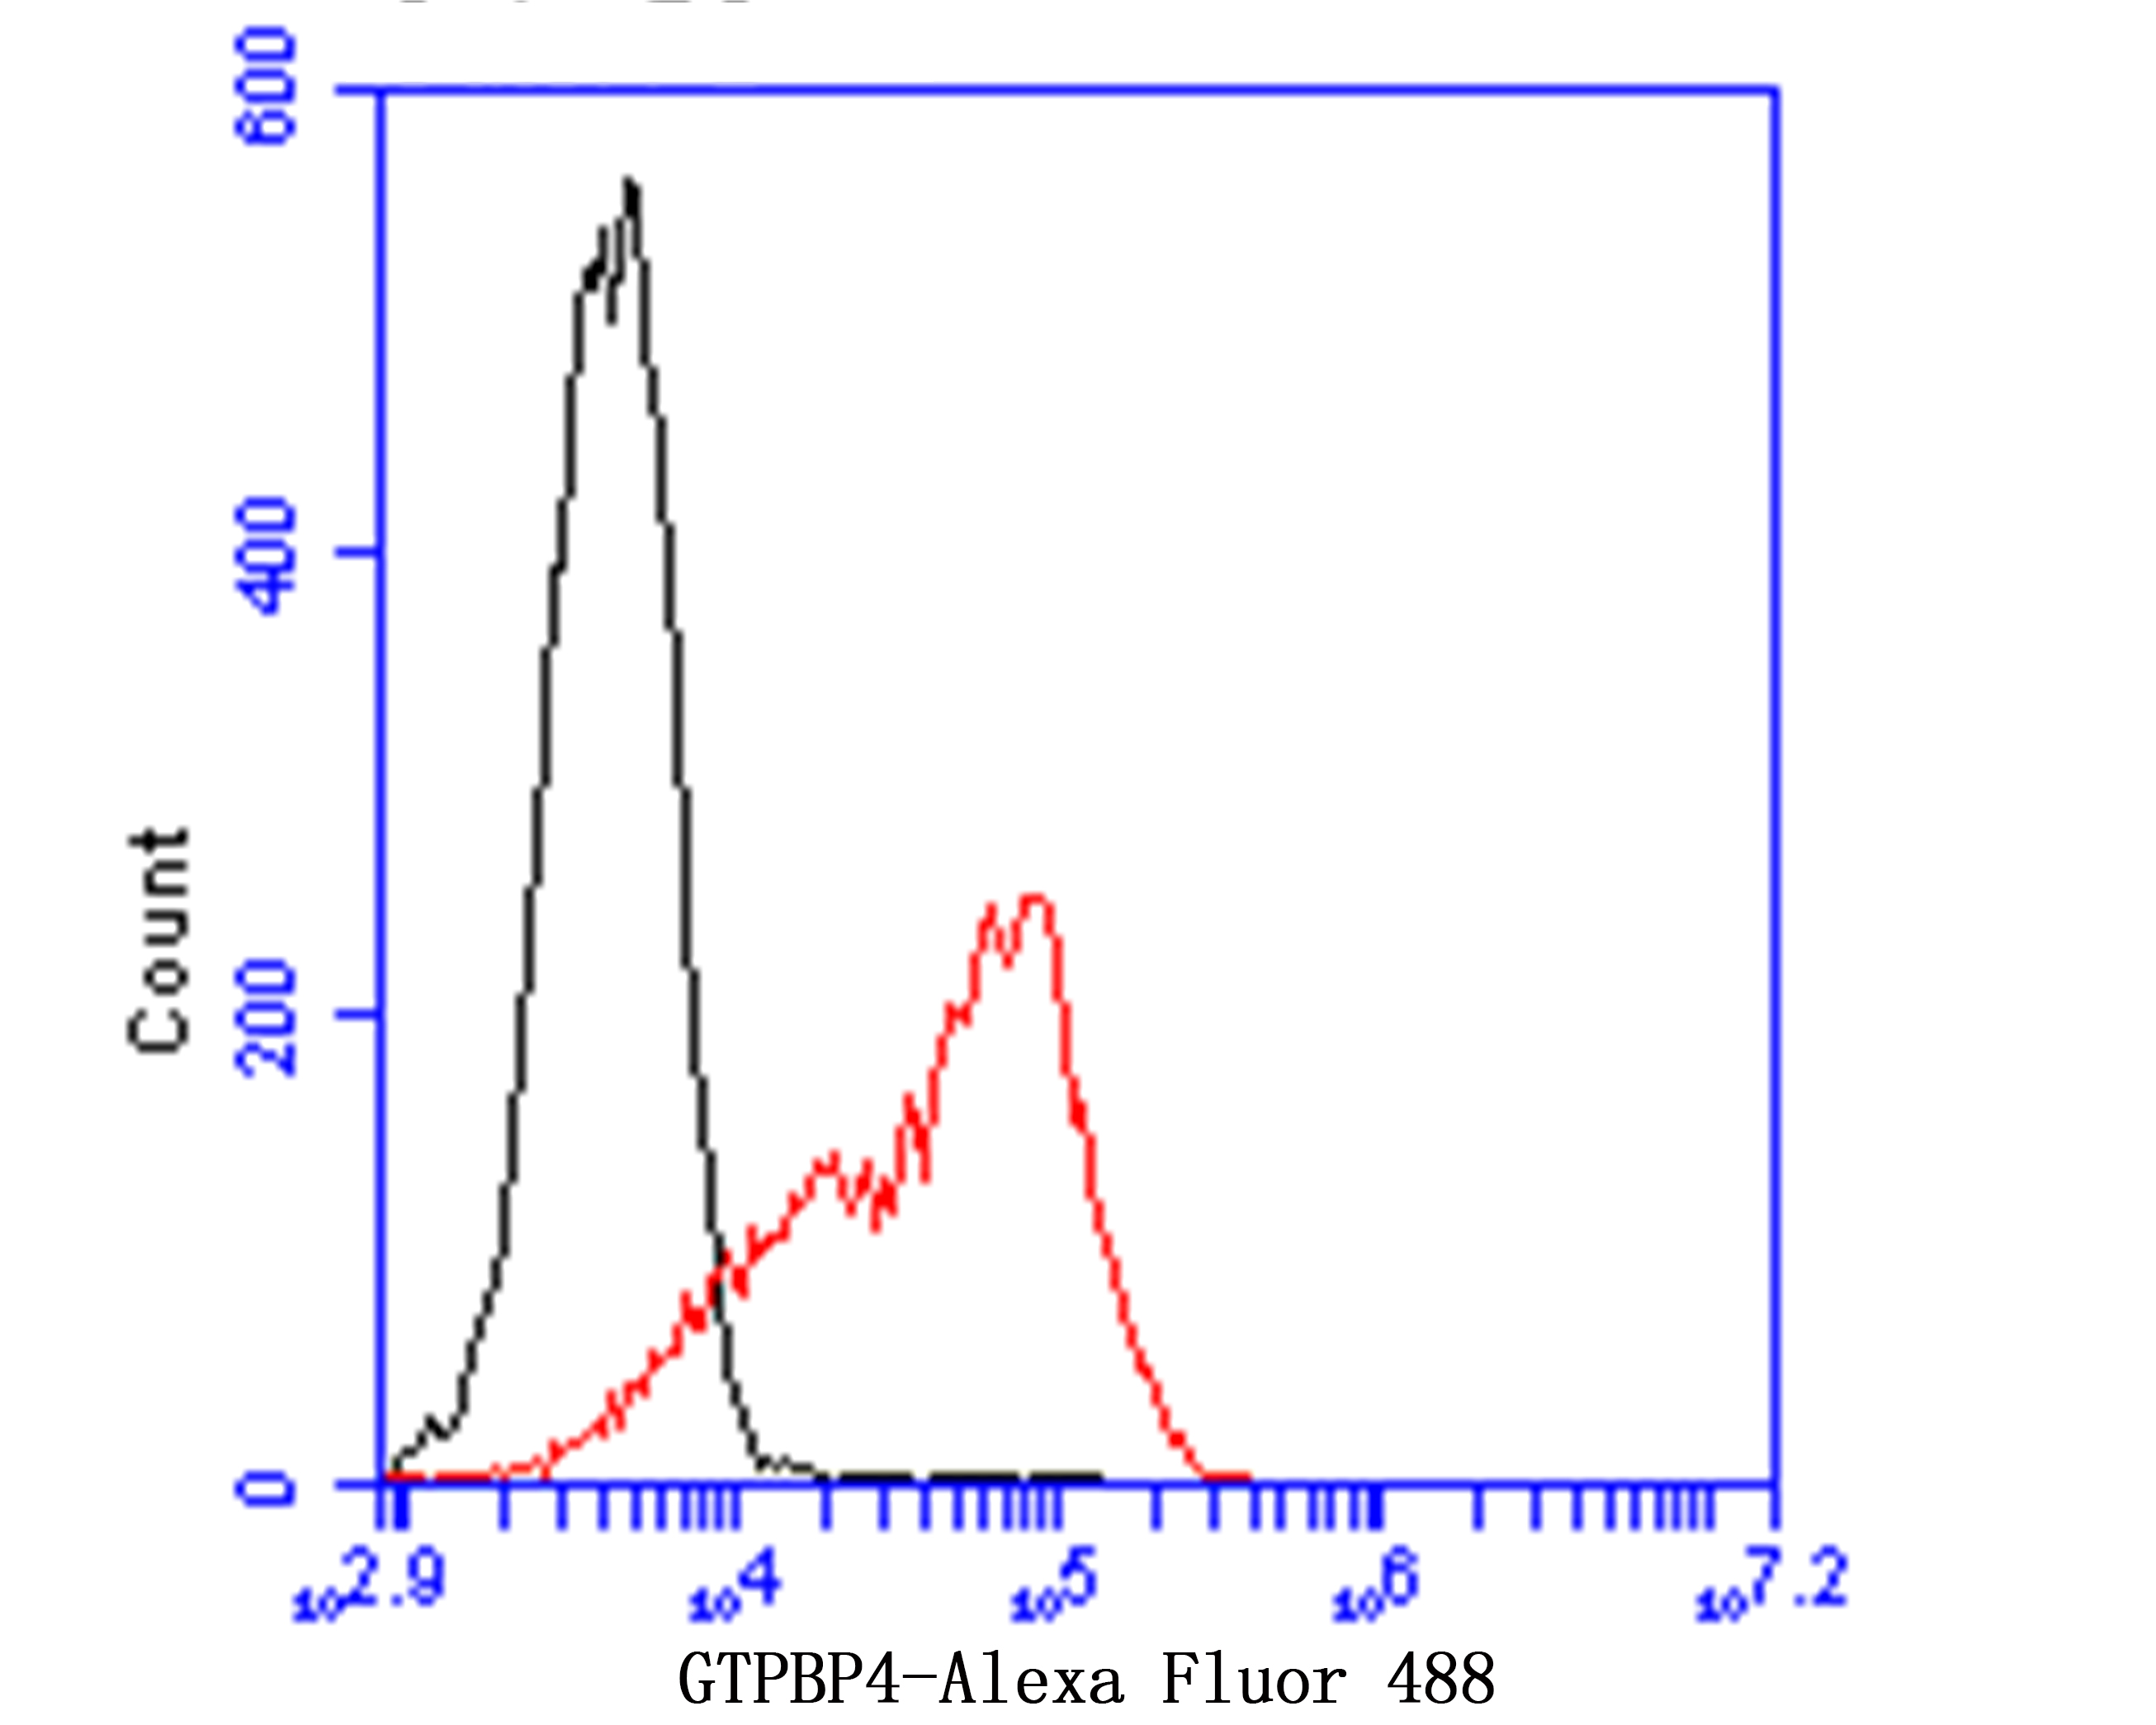 Flow cytometric analysis of GTPBP4 was done on thp-1 cells. The cells were fixed, permeabilized and stained with the primary antibody (ET7109-59, 1/100) (red). After incubation of the primary antibody at room temperature for an hour, the cells were stained with a Alexa Fluor 488-conjugated goat anti-rabbit IgG Secondary antibody at 1/500 dilution for 30 minutes.Unlabelled sample was used as a control (cells without incubation with primary antibody; black).